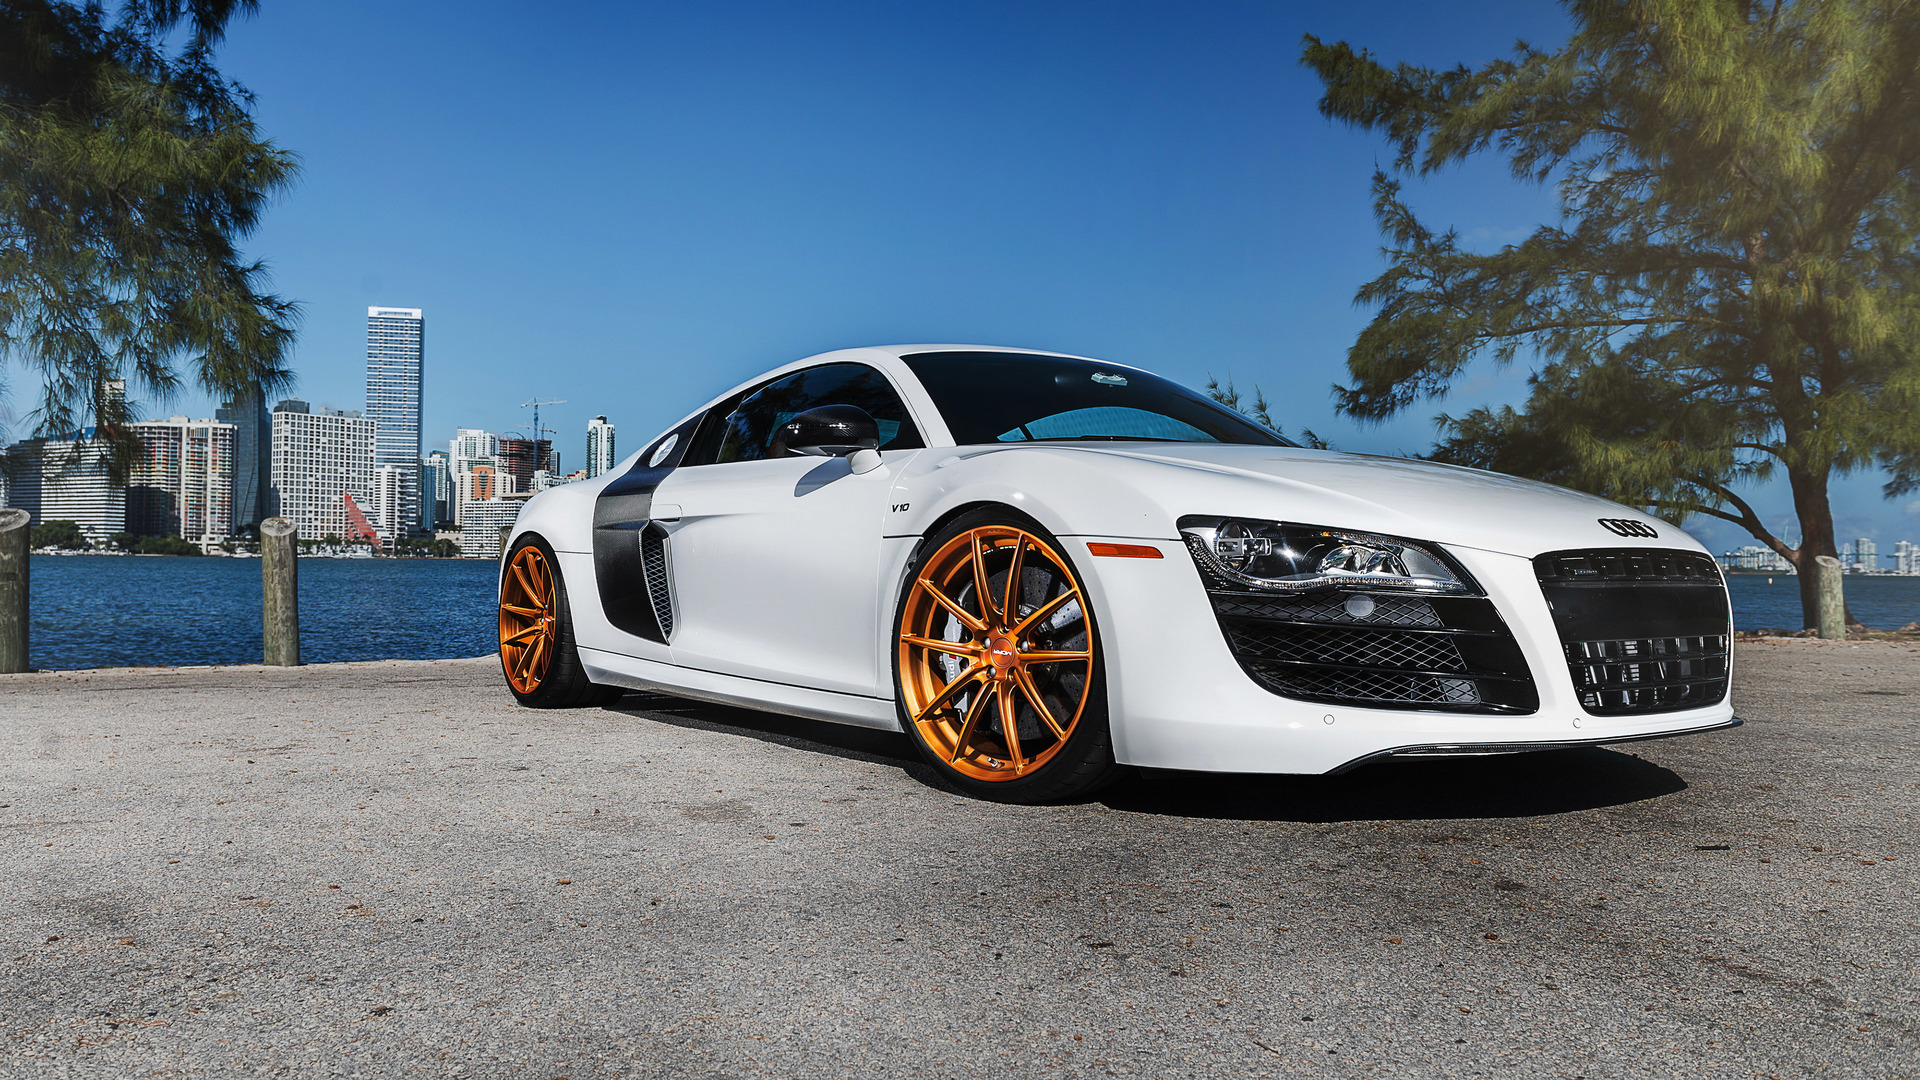 HD Wallpapers Of Audi Cars